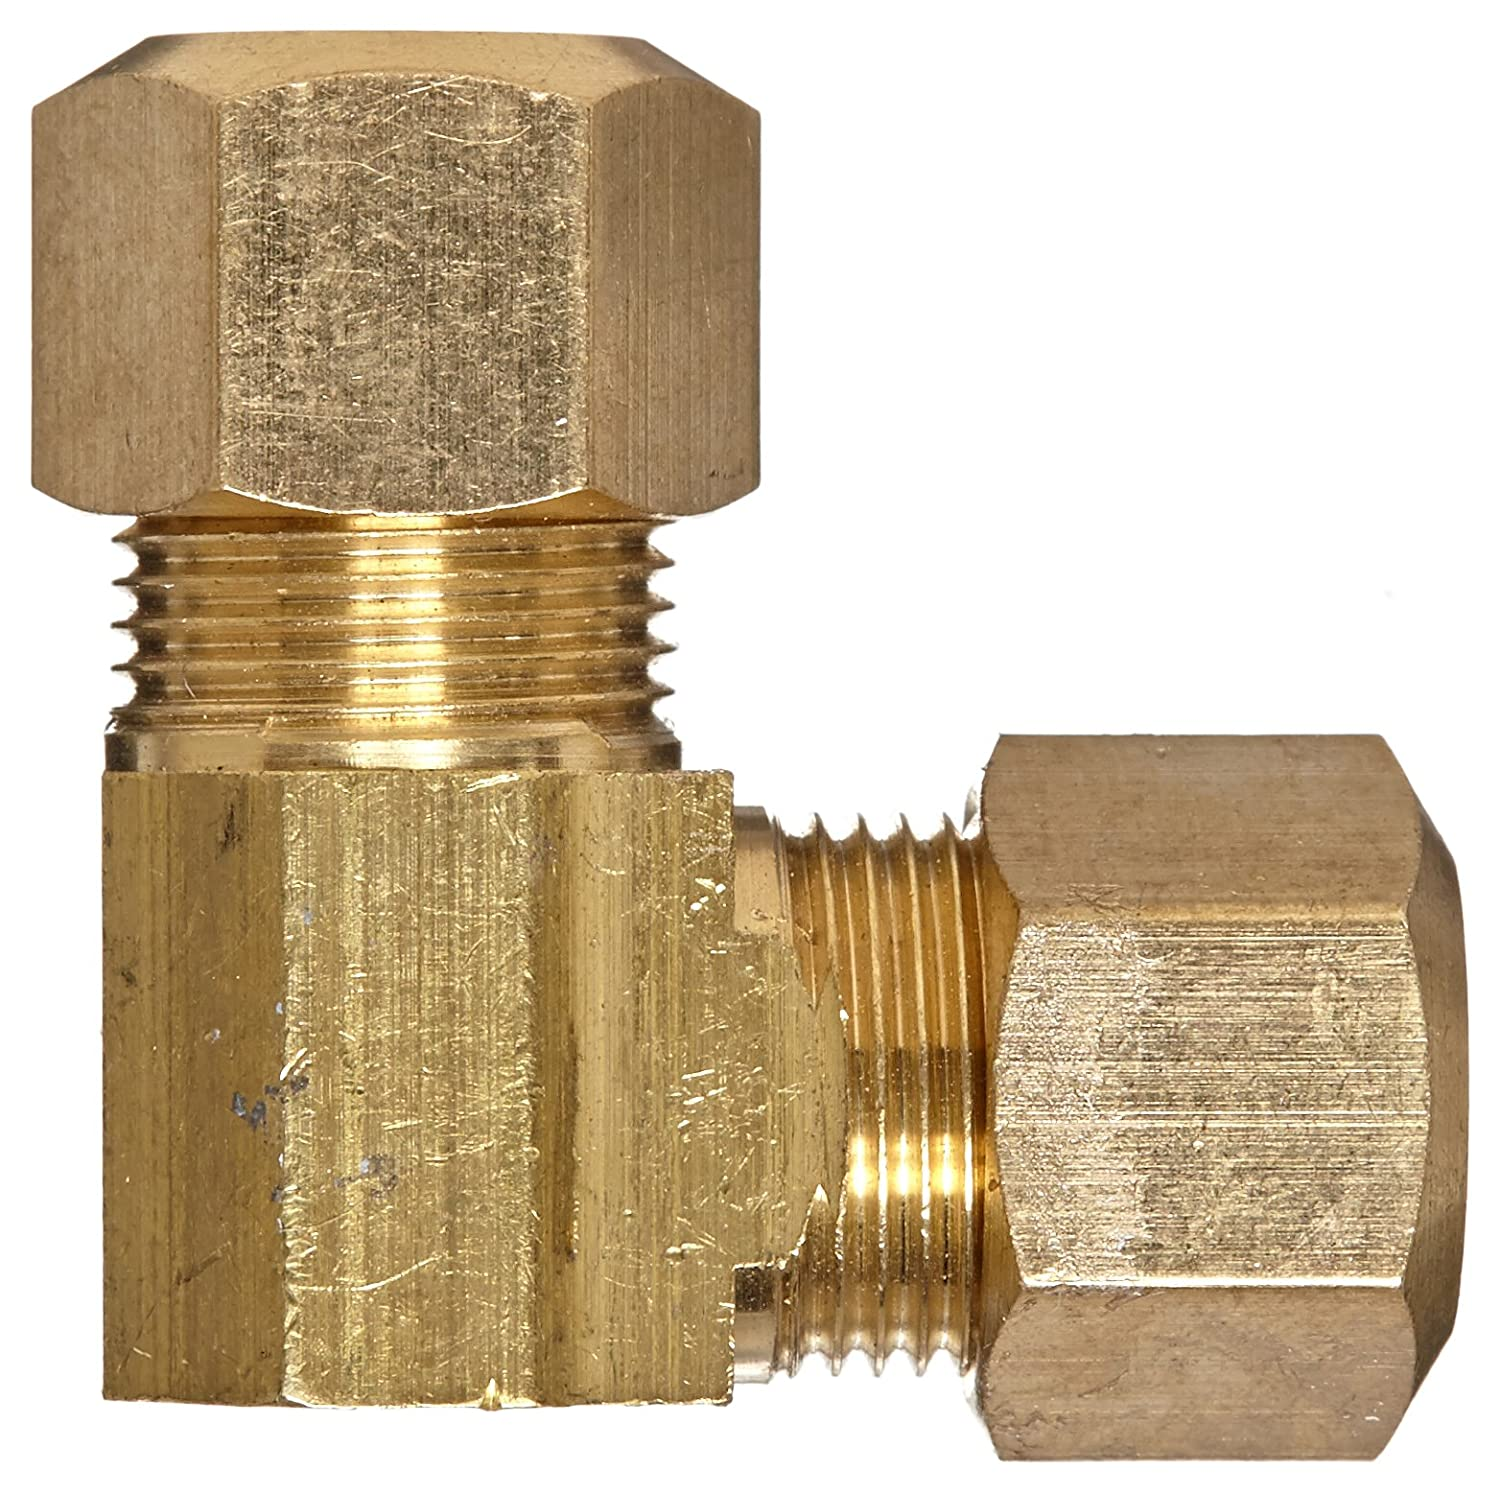 Anderson Metals 50065 Brass Compression Tube Fitting 3//8 x 3//8 Tube OD 3//8 x 3//8 Tube OD 50065-06 90 Degree Elbow